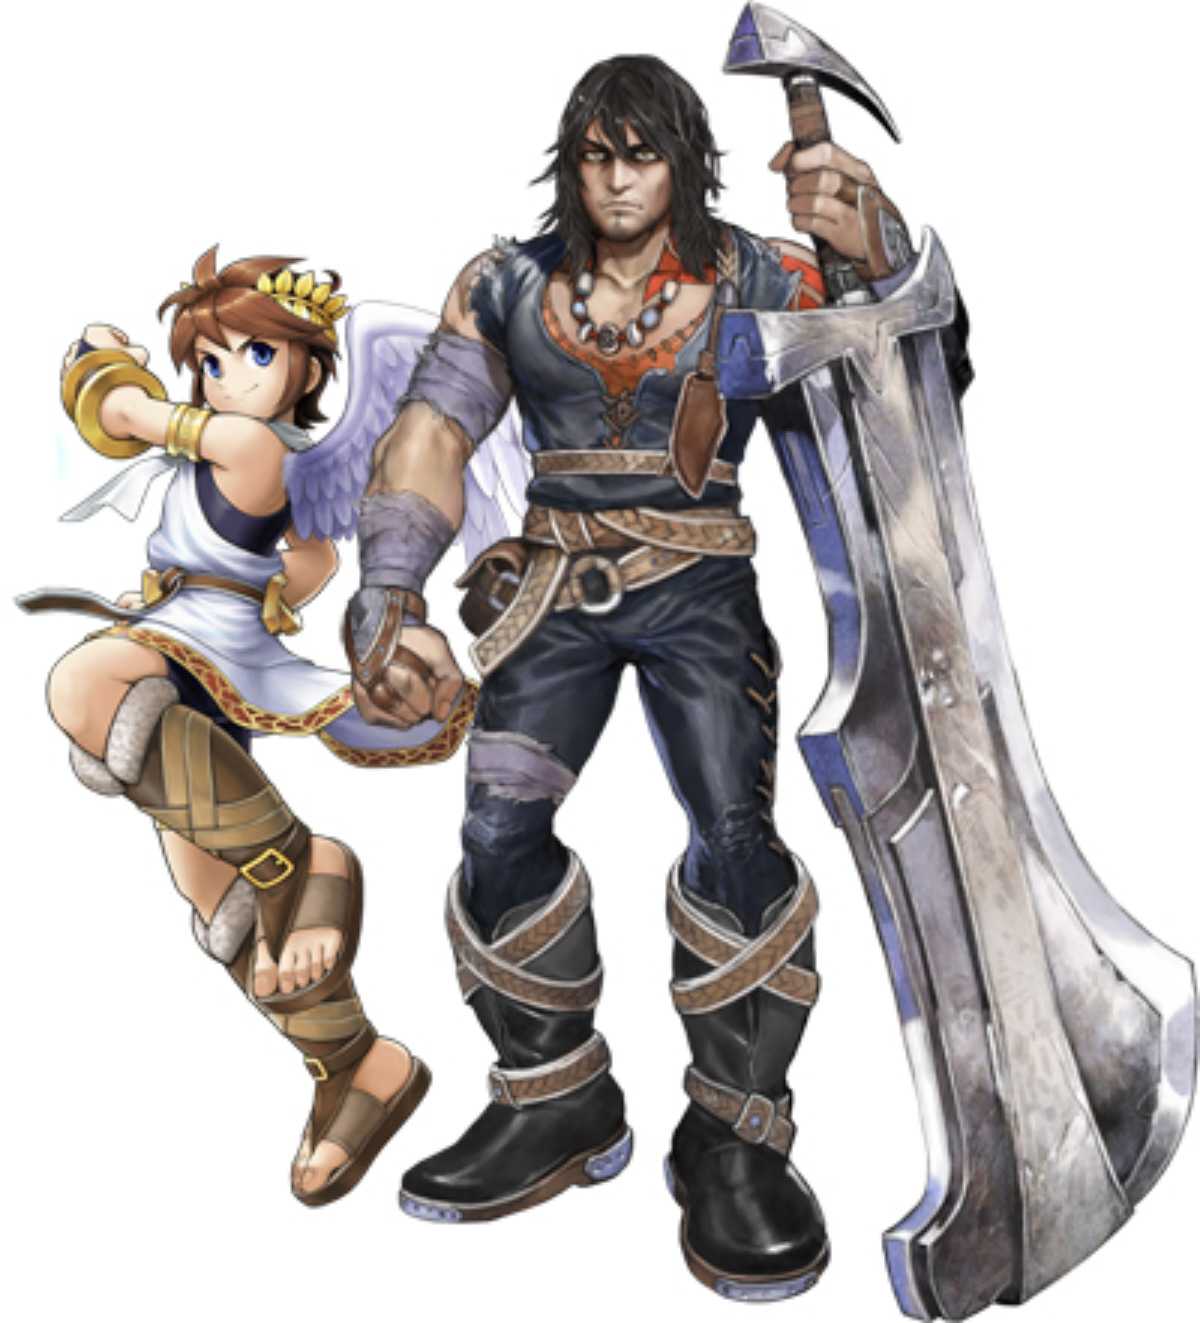 Magnus And Pit Art In Kid Icarus Uprising For 3DS